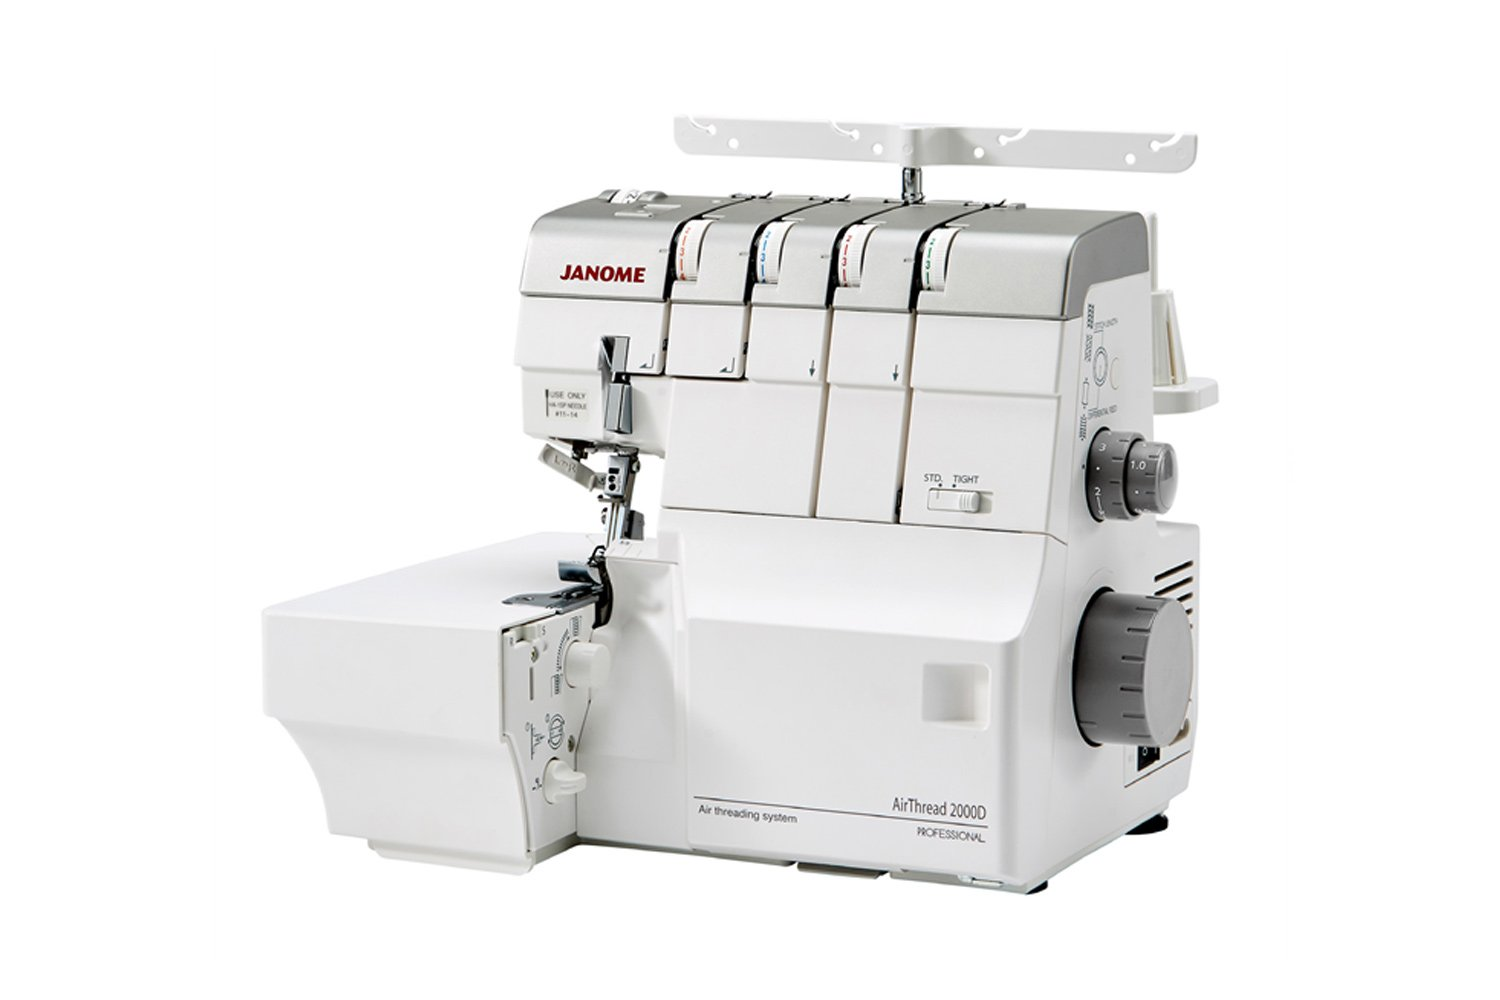 JANOME AIR THREAD SERGER AT2000D